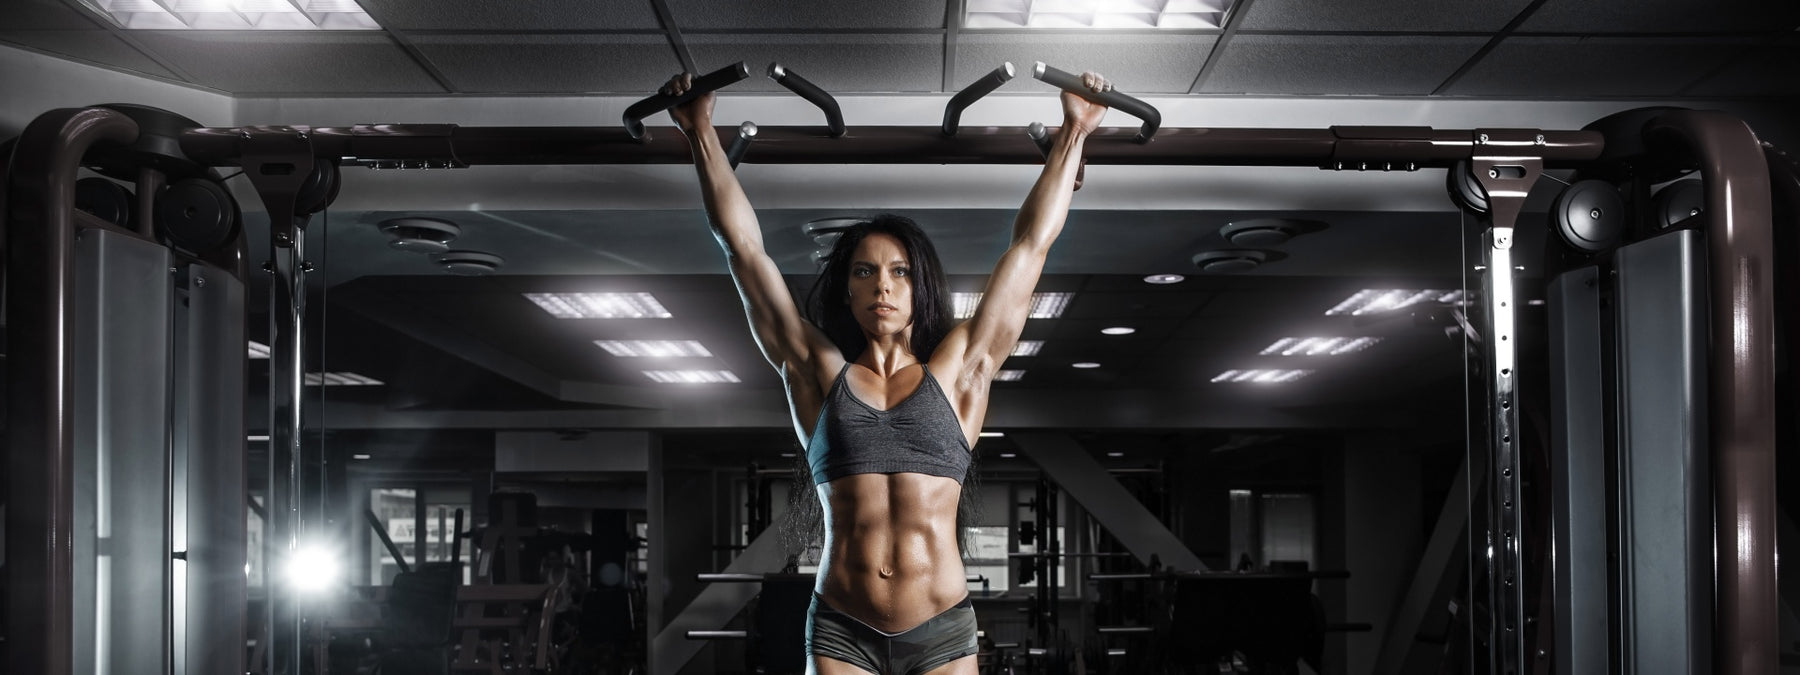 Pull Ups vs. Chin Ups - What's The Difference? (Plus Tips!)